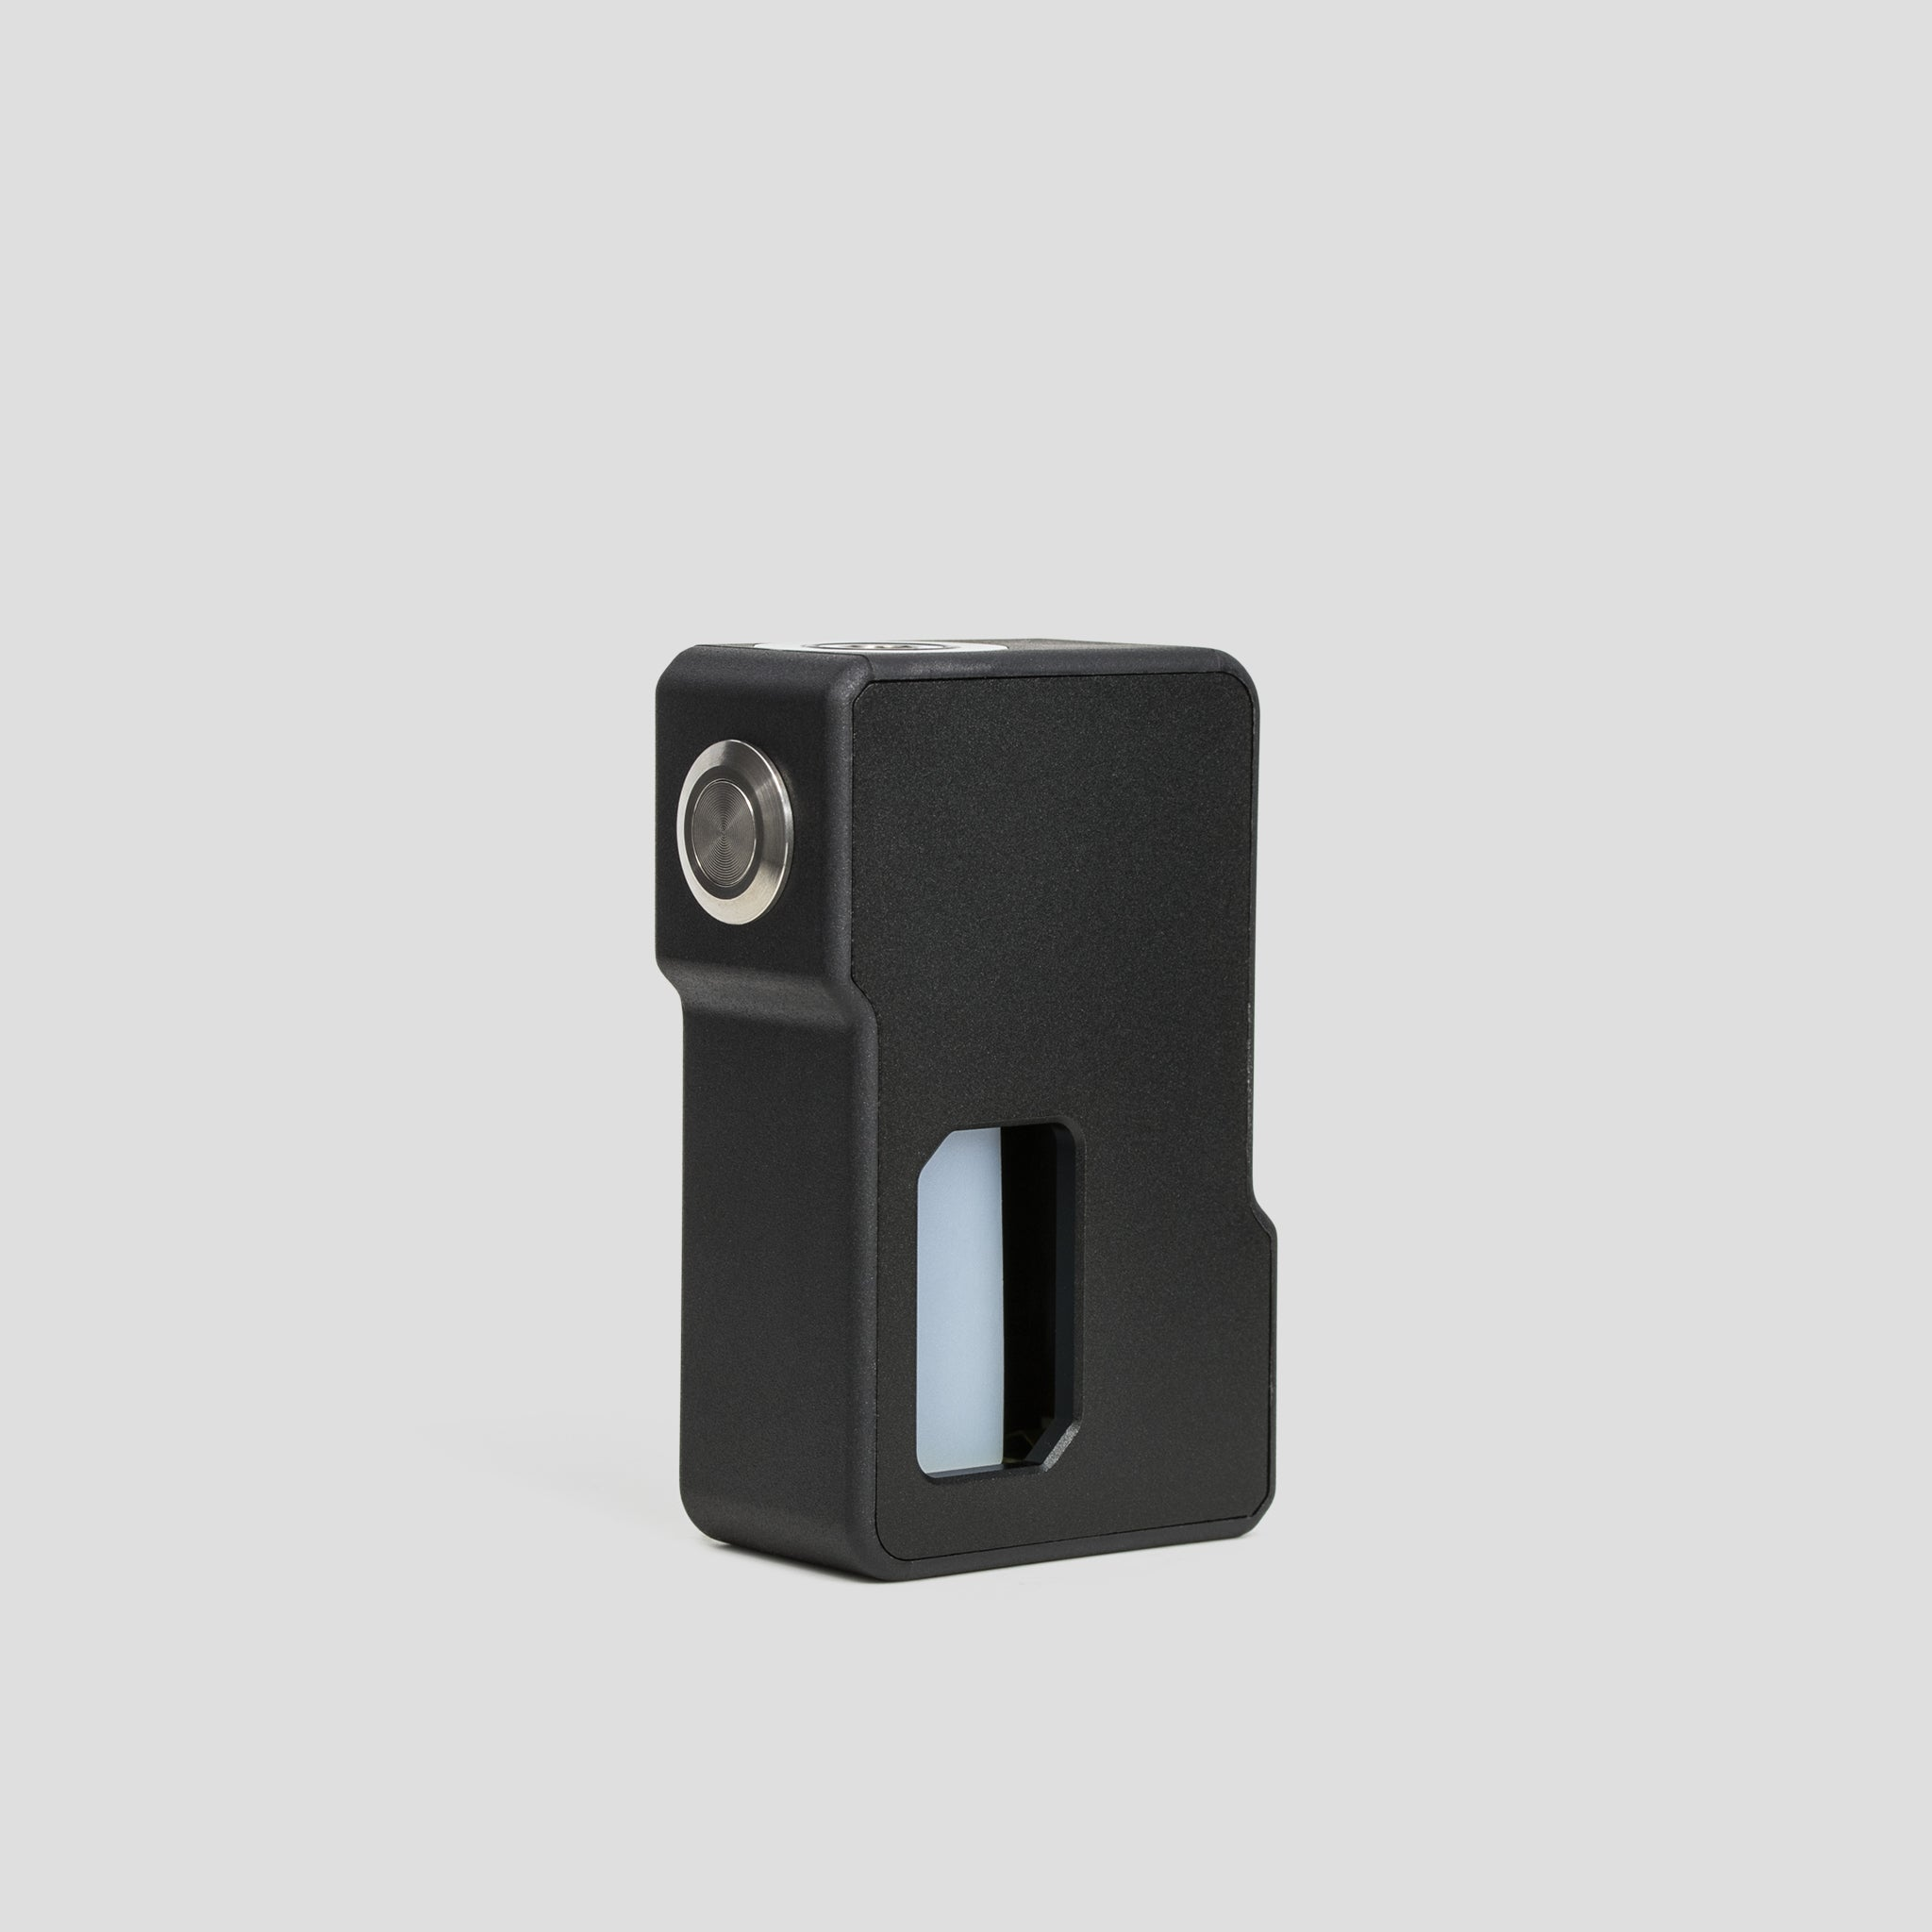 Augvape x Mass Mods S2 18650 MOSFET Mechanical Squonk Mod